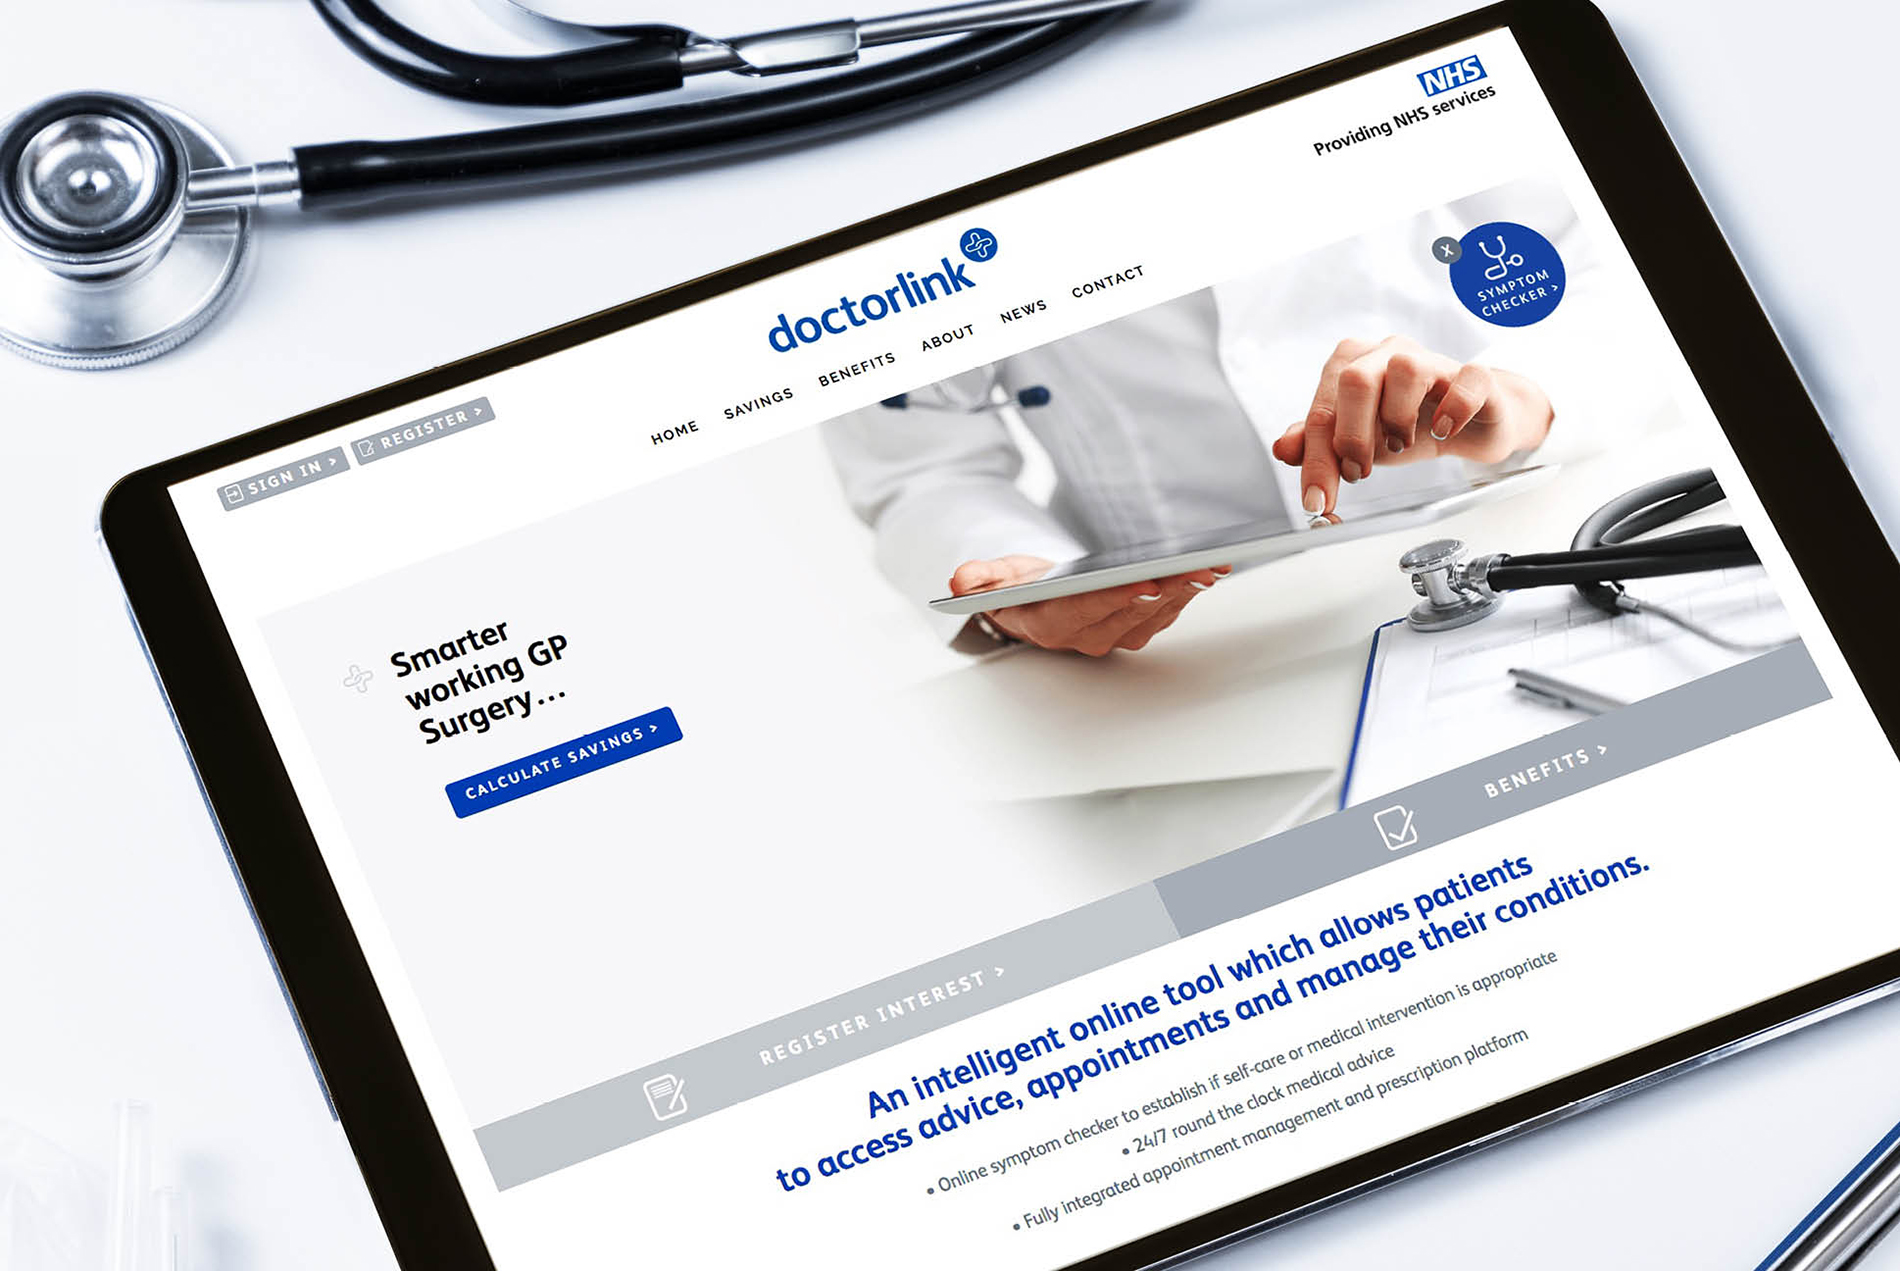 Doctorlink website